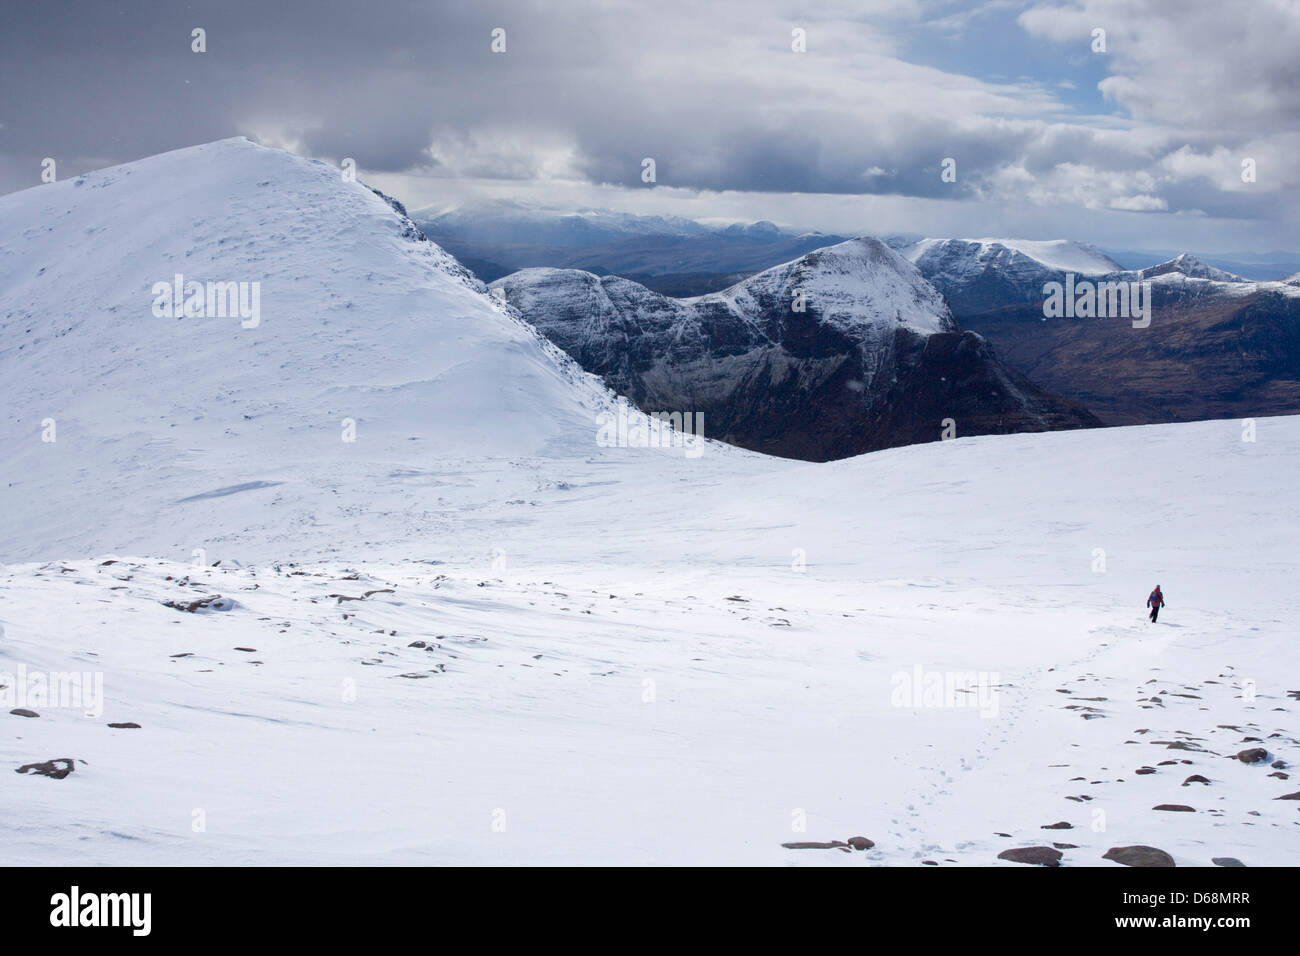 Looking towards An Loagh from Cul Mor. - Stock Image